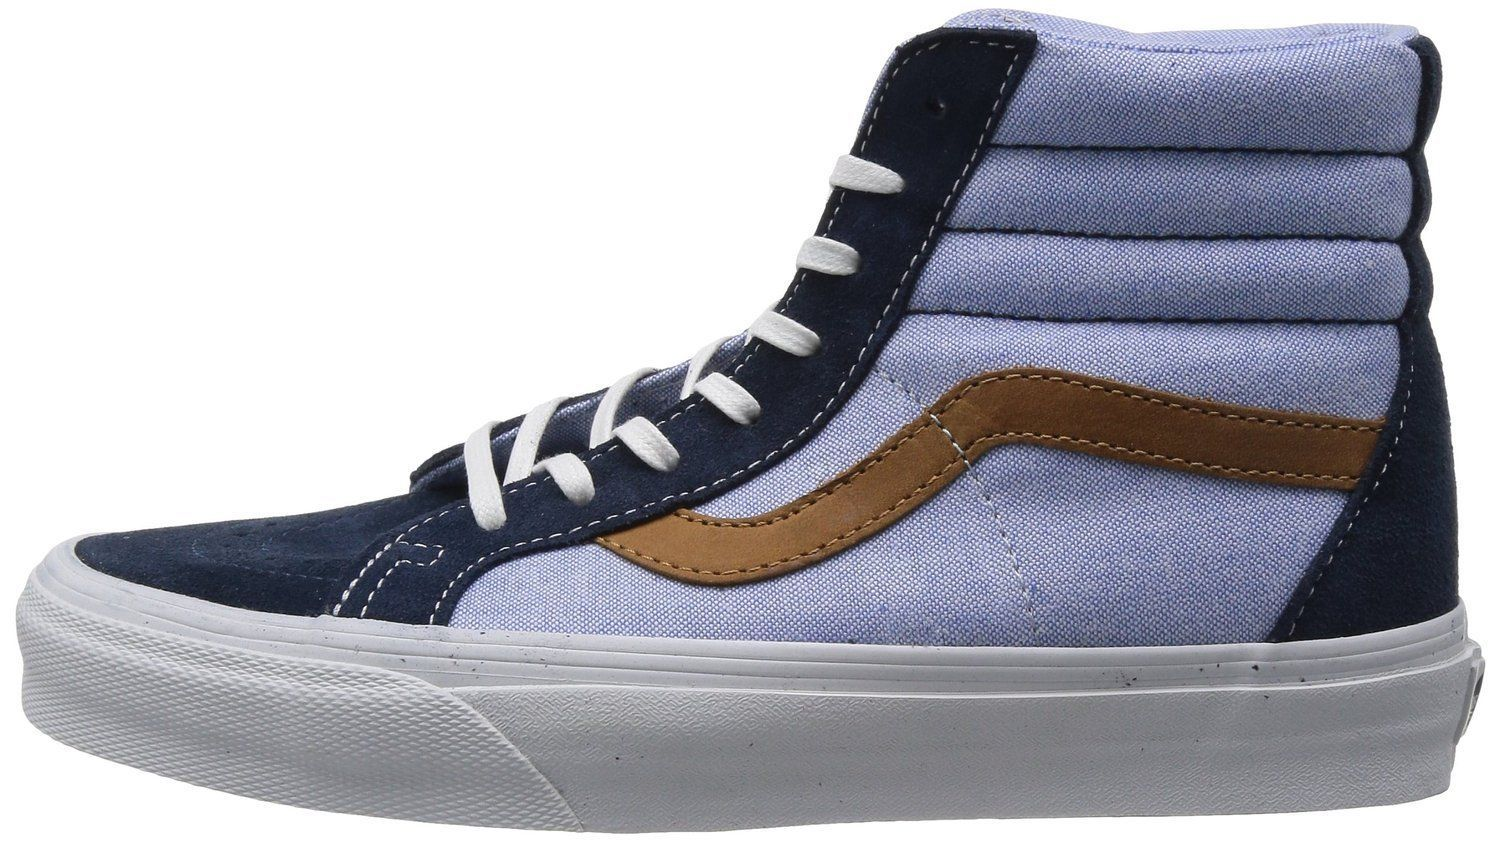 7ba4c0efbedf New Vans SK8-HI Reissue Ca (C P) Dress Blues and 50 similar items